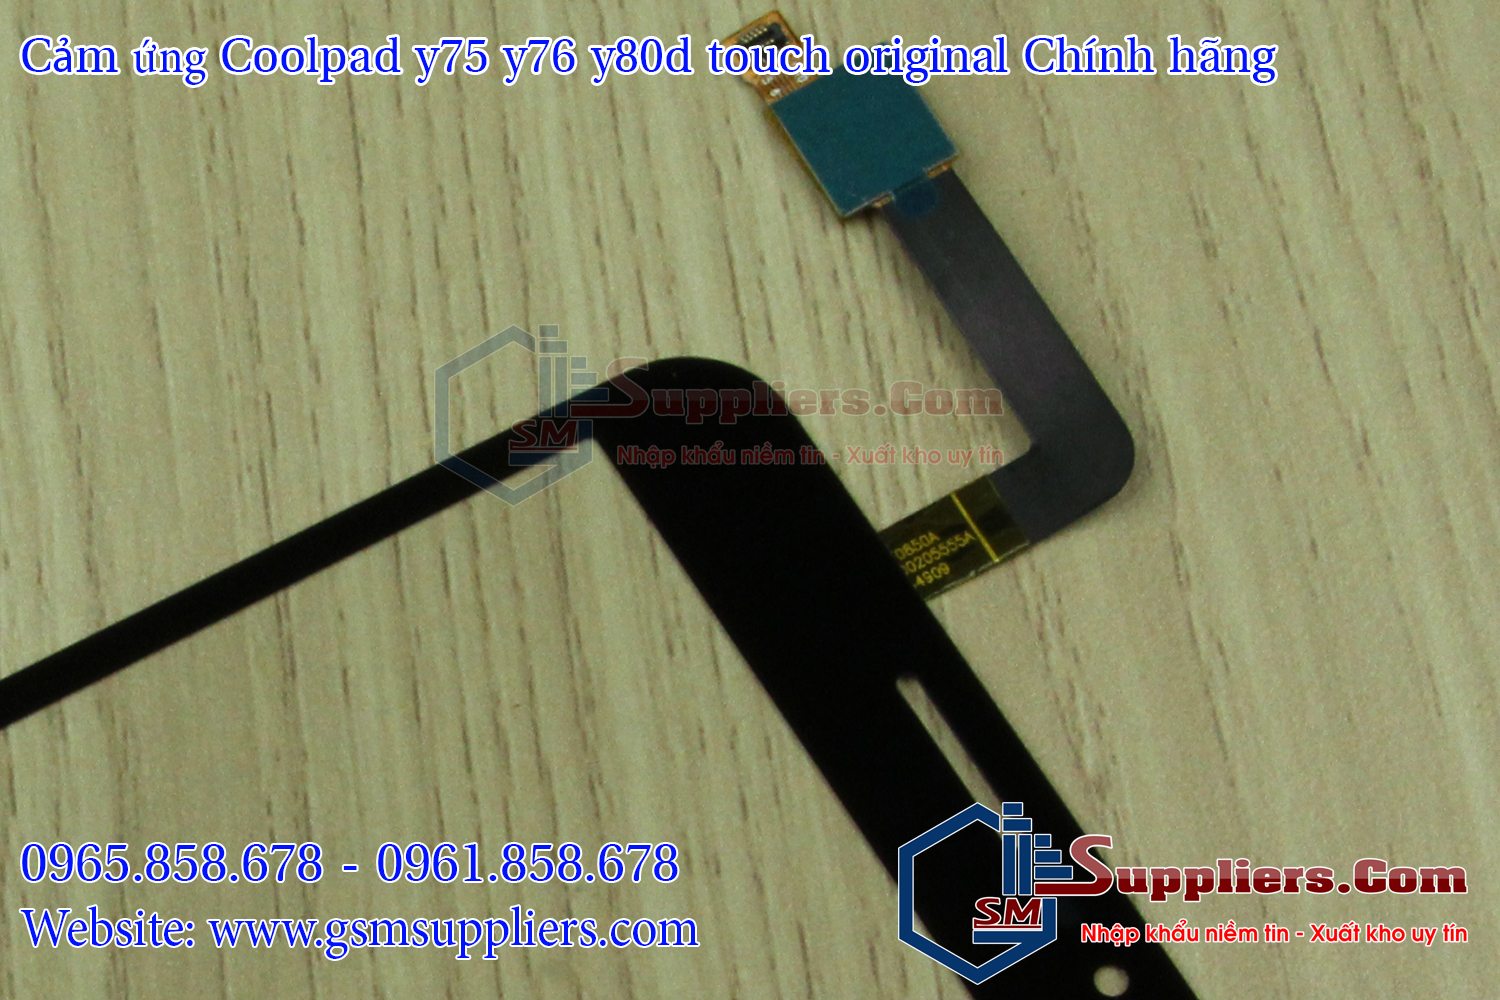 cam ung coolpad y75 y76 y80d touch original chinh hang 4